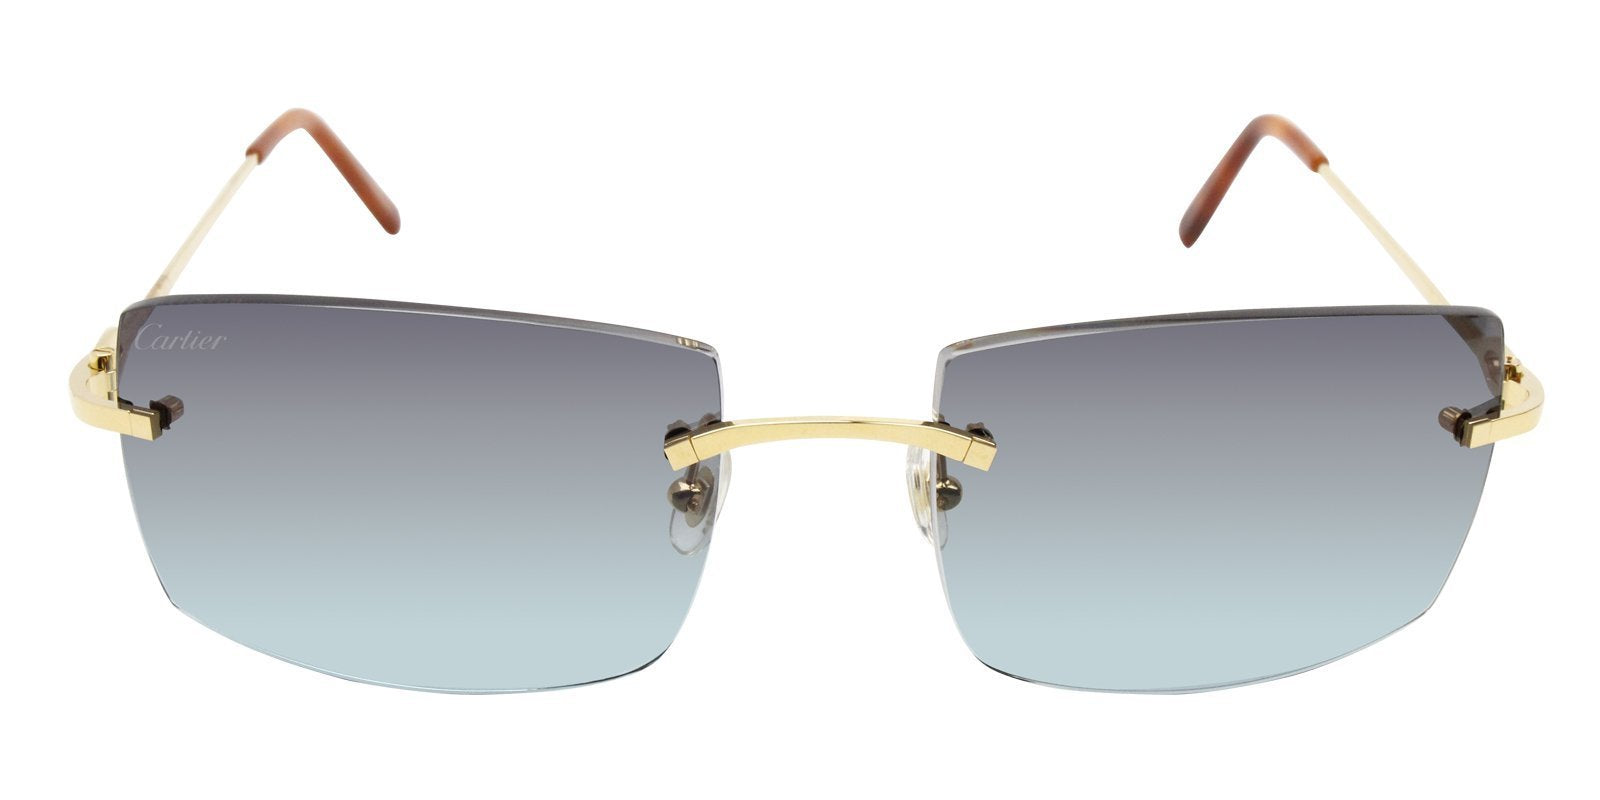 Cartier - C Decor Gold Rimless Unisex Sunglasses - mm-Sunglasses-Designer Eyes